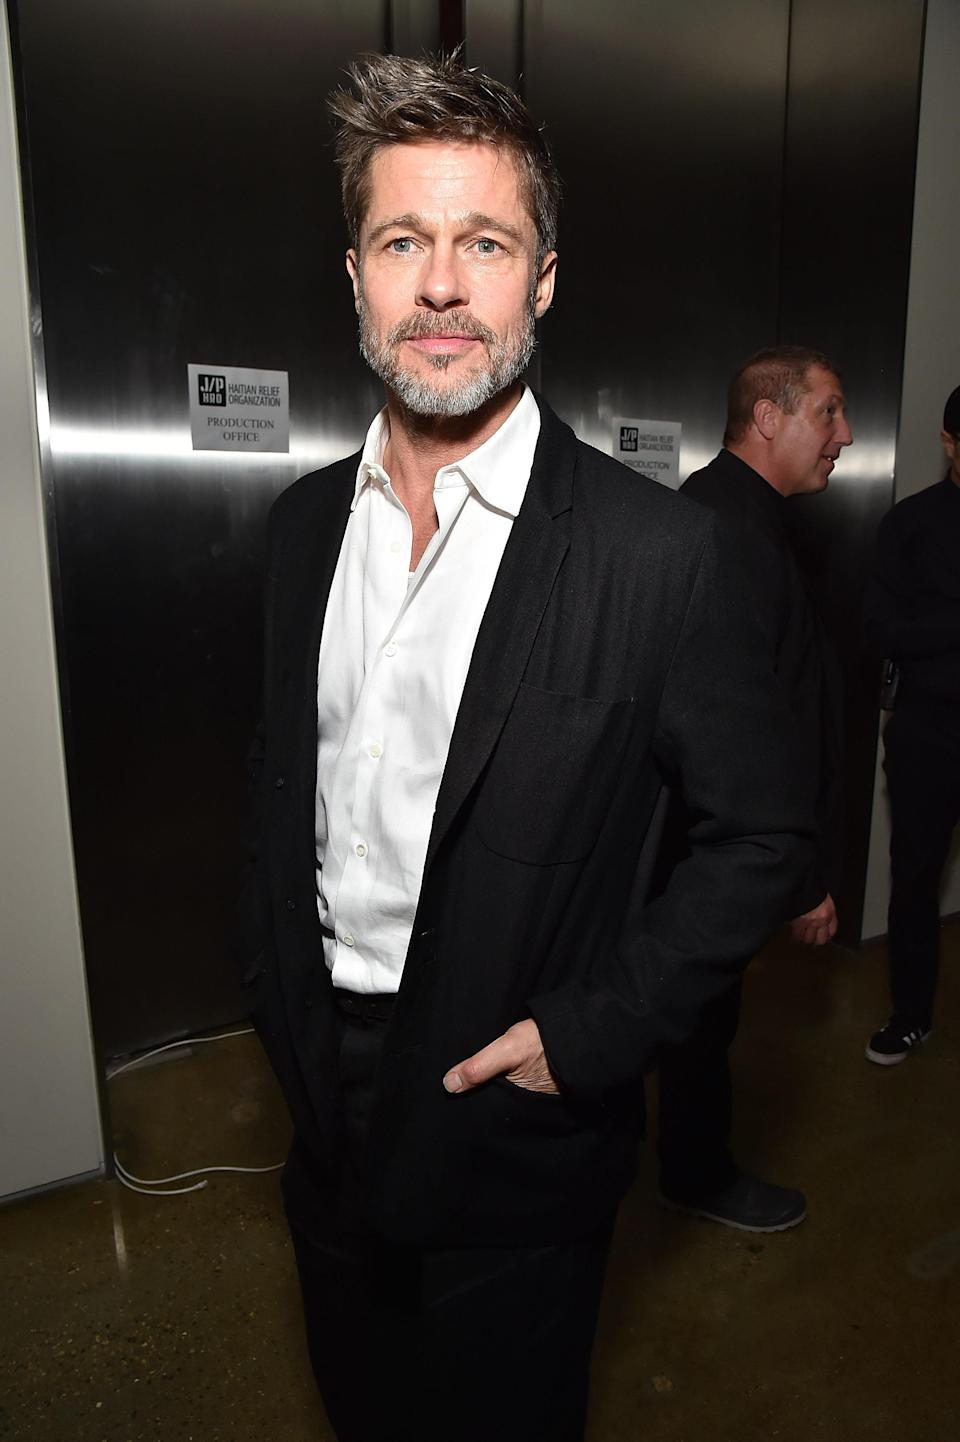 <p>The 54-year-old, pictured here in January, is currently single, as far as we know. Looking at old snaps of the star, you could definitely say he takes on the style of whoever he's dating. Photo: Getty Images </p>